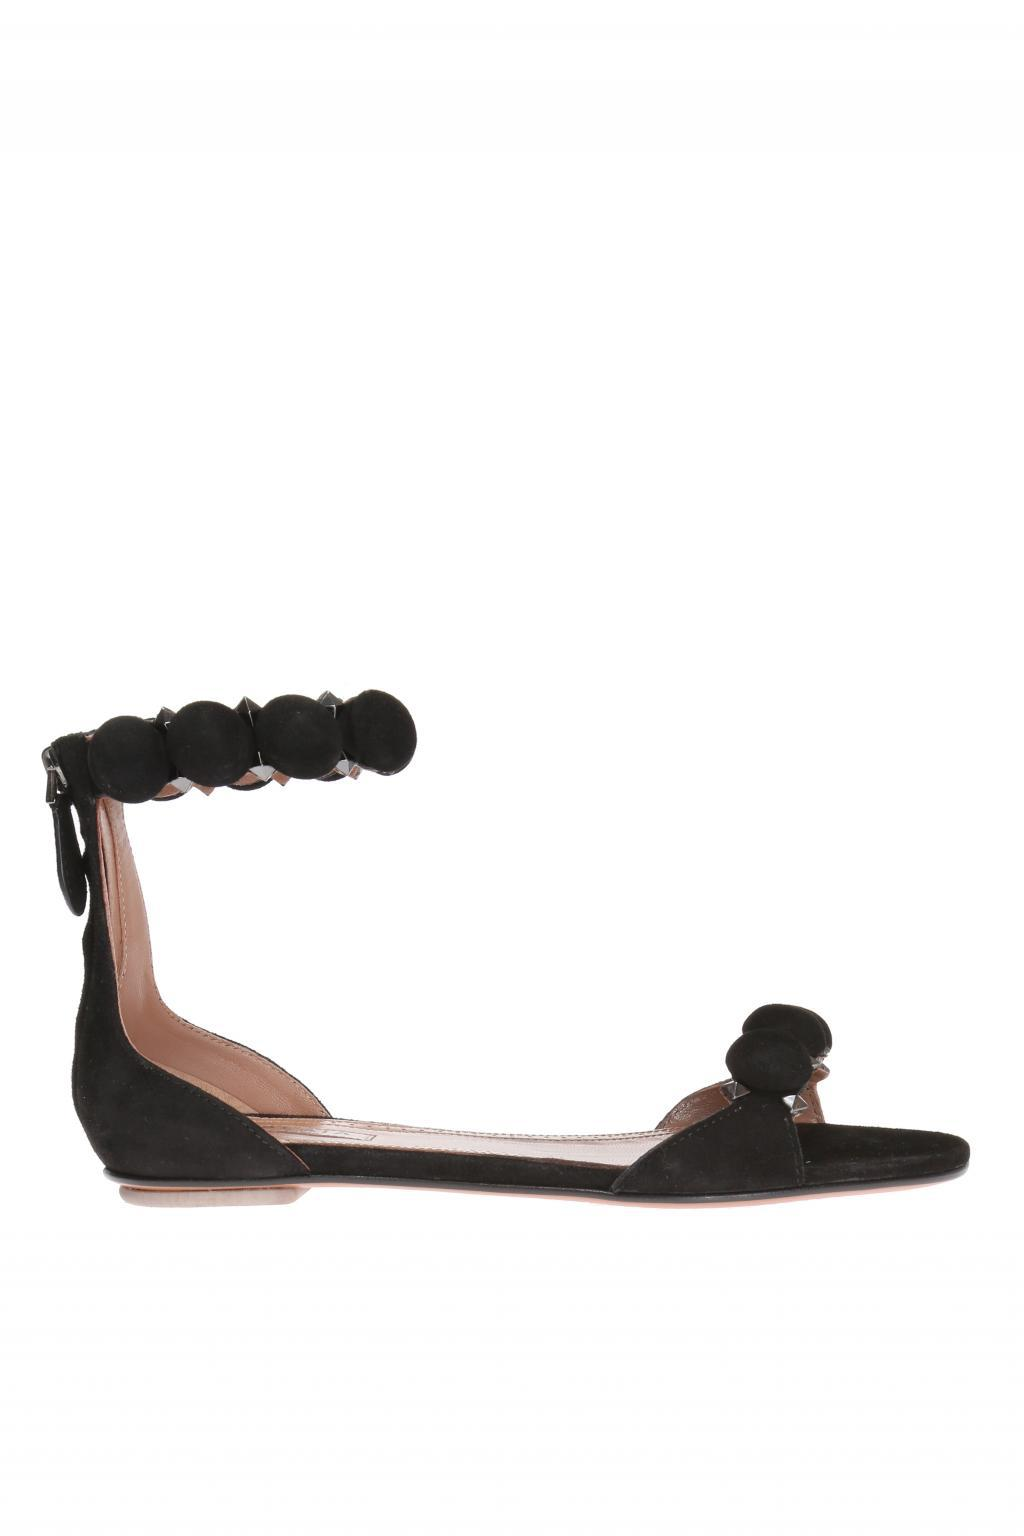 Pre-owned - Exotic leathers sandals Alaia S0pwa5epH